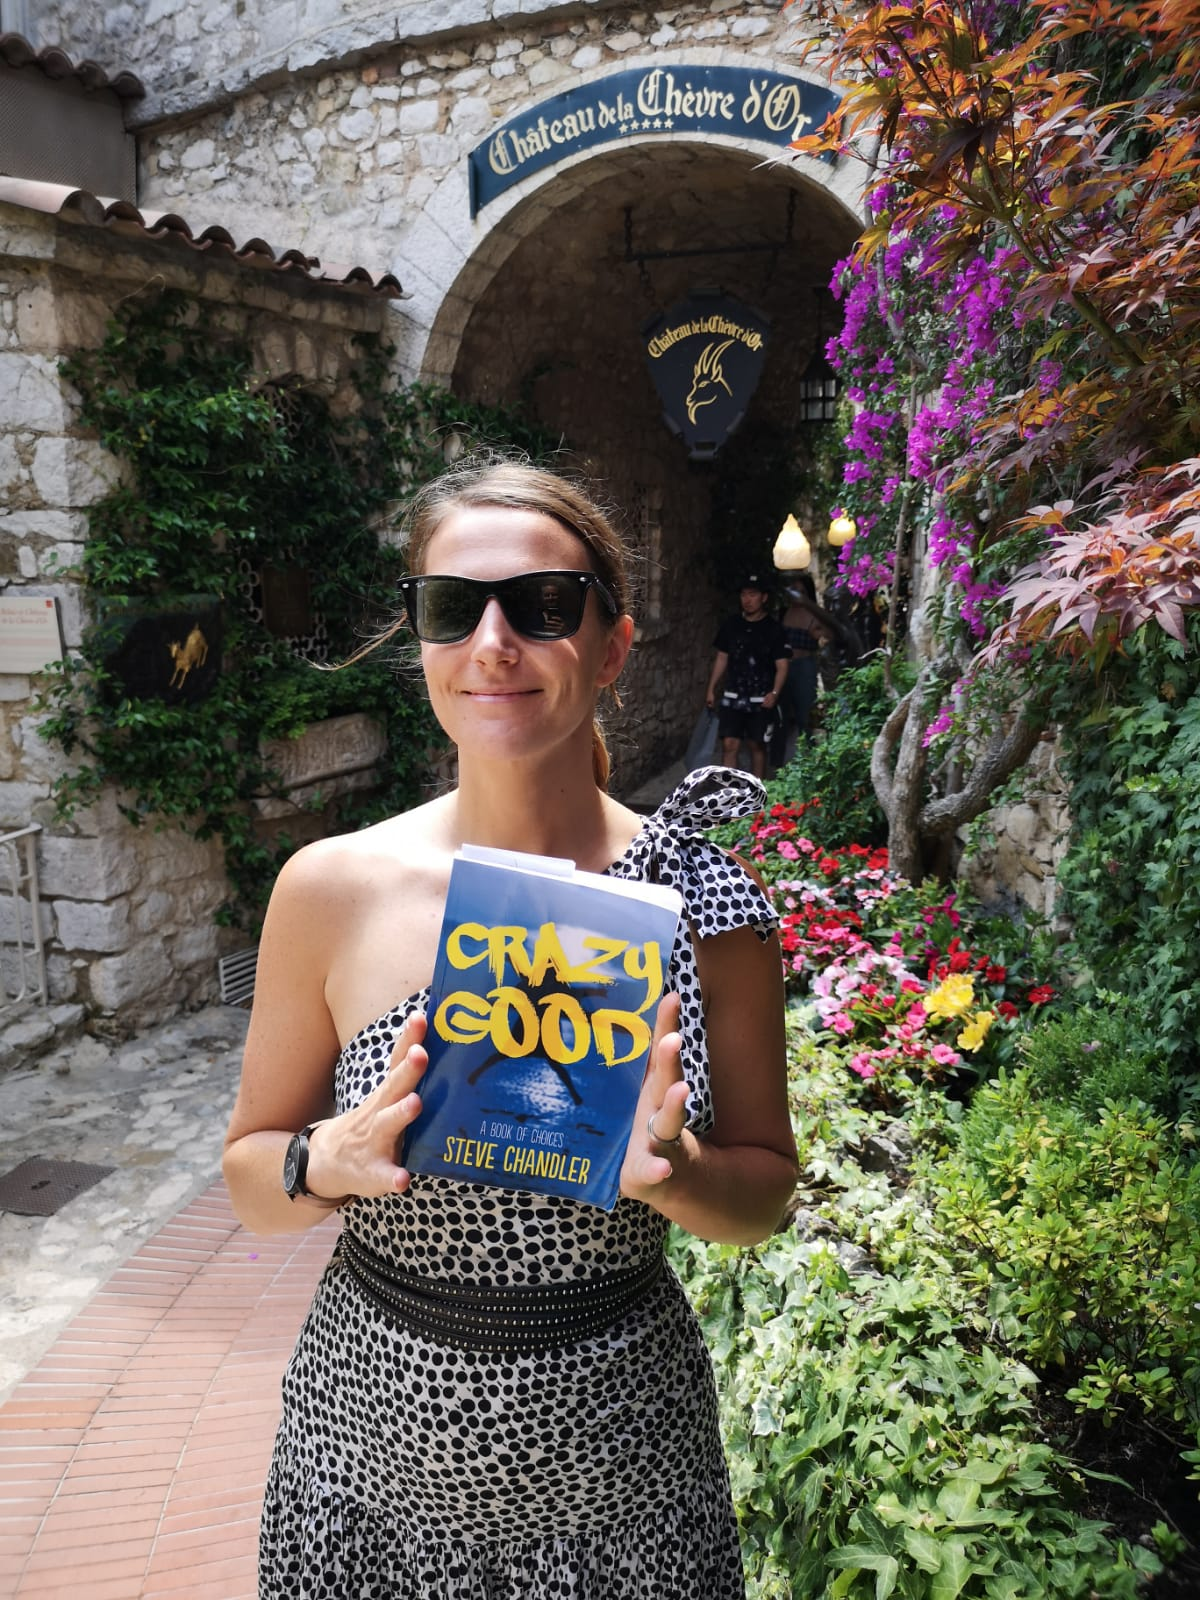 Getting inspired by Book of the Month, Crazy Good, on a crazy good work trip to the South of France